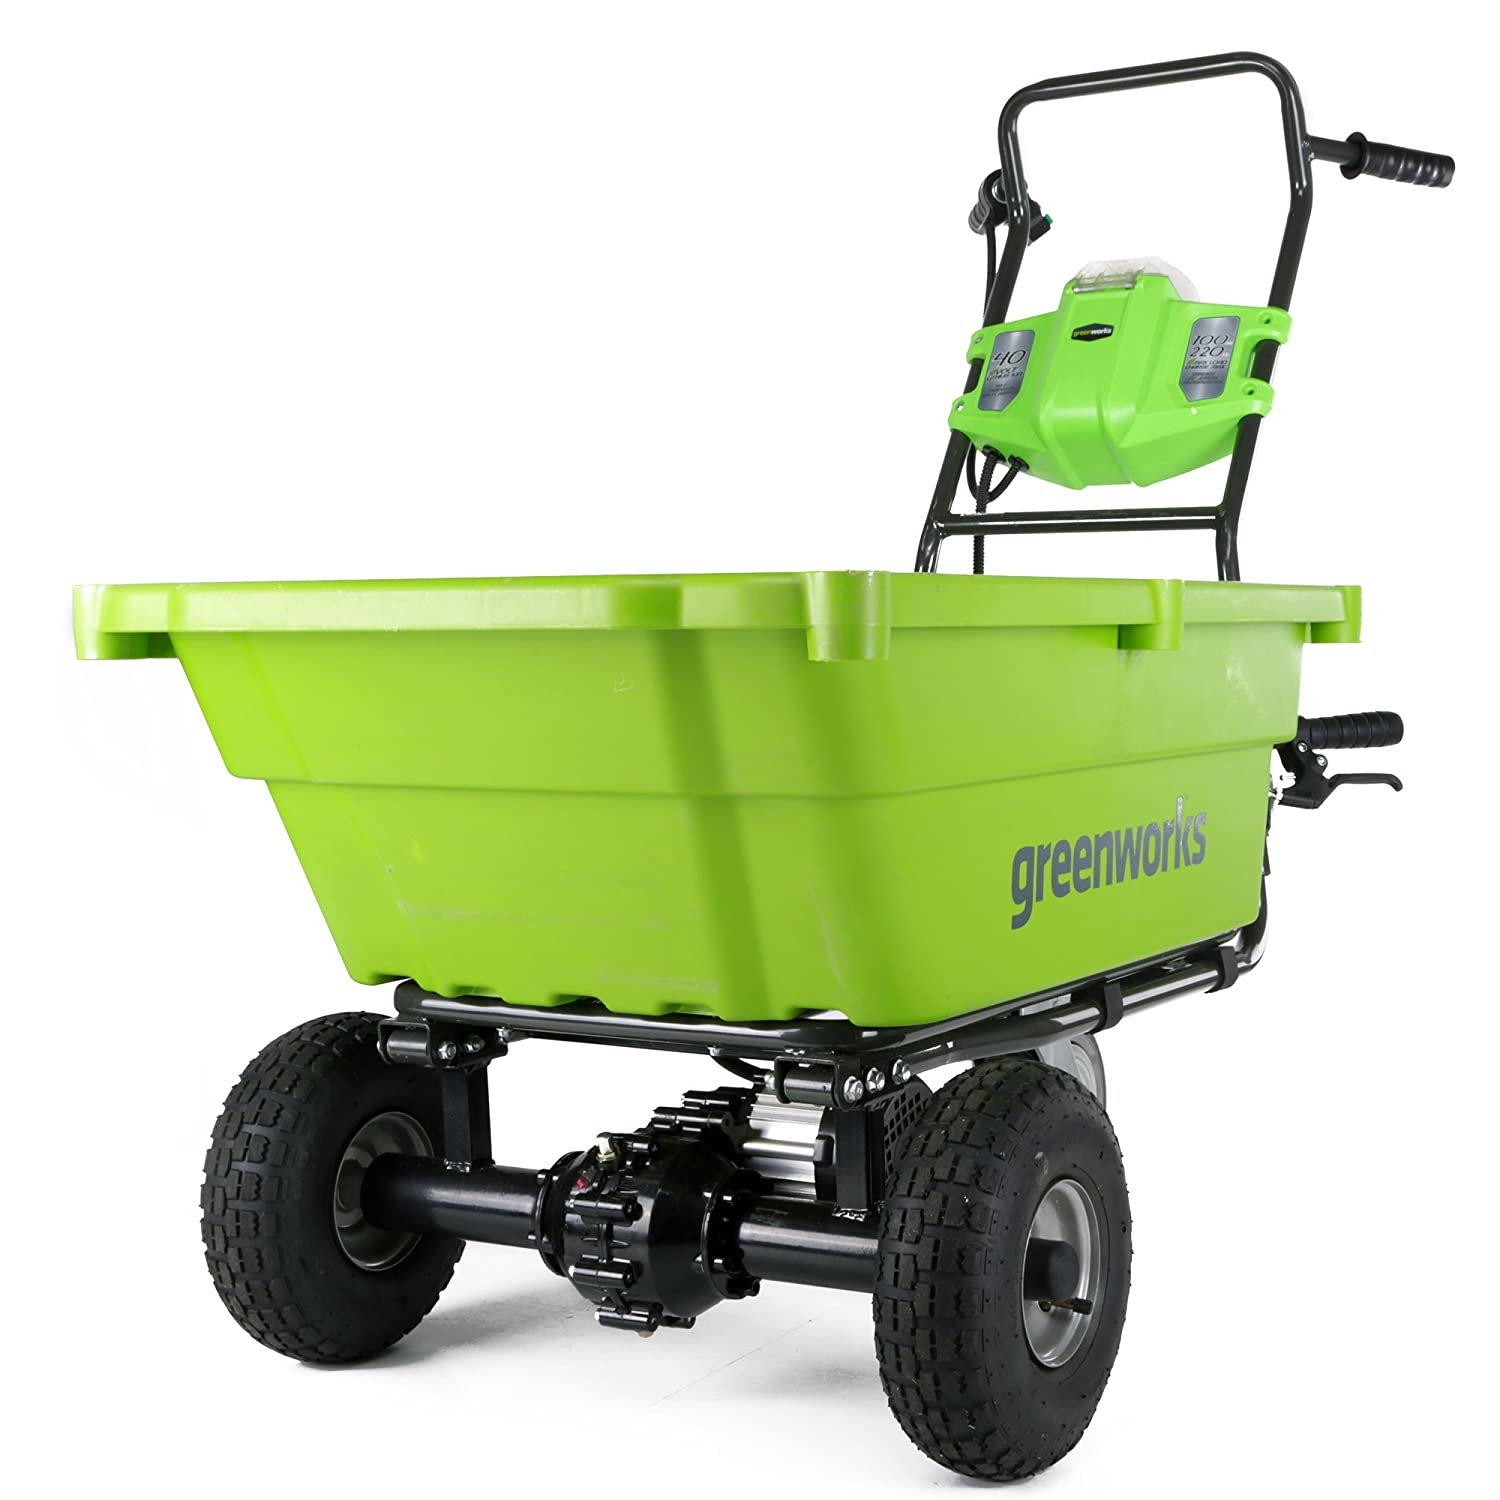 Amazon.com: Greenworks G-MAX - Carro de jardín (40 V), Con ...